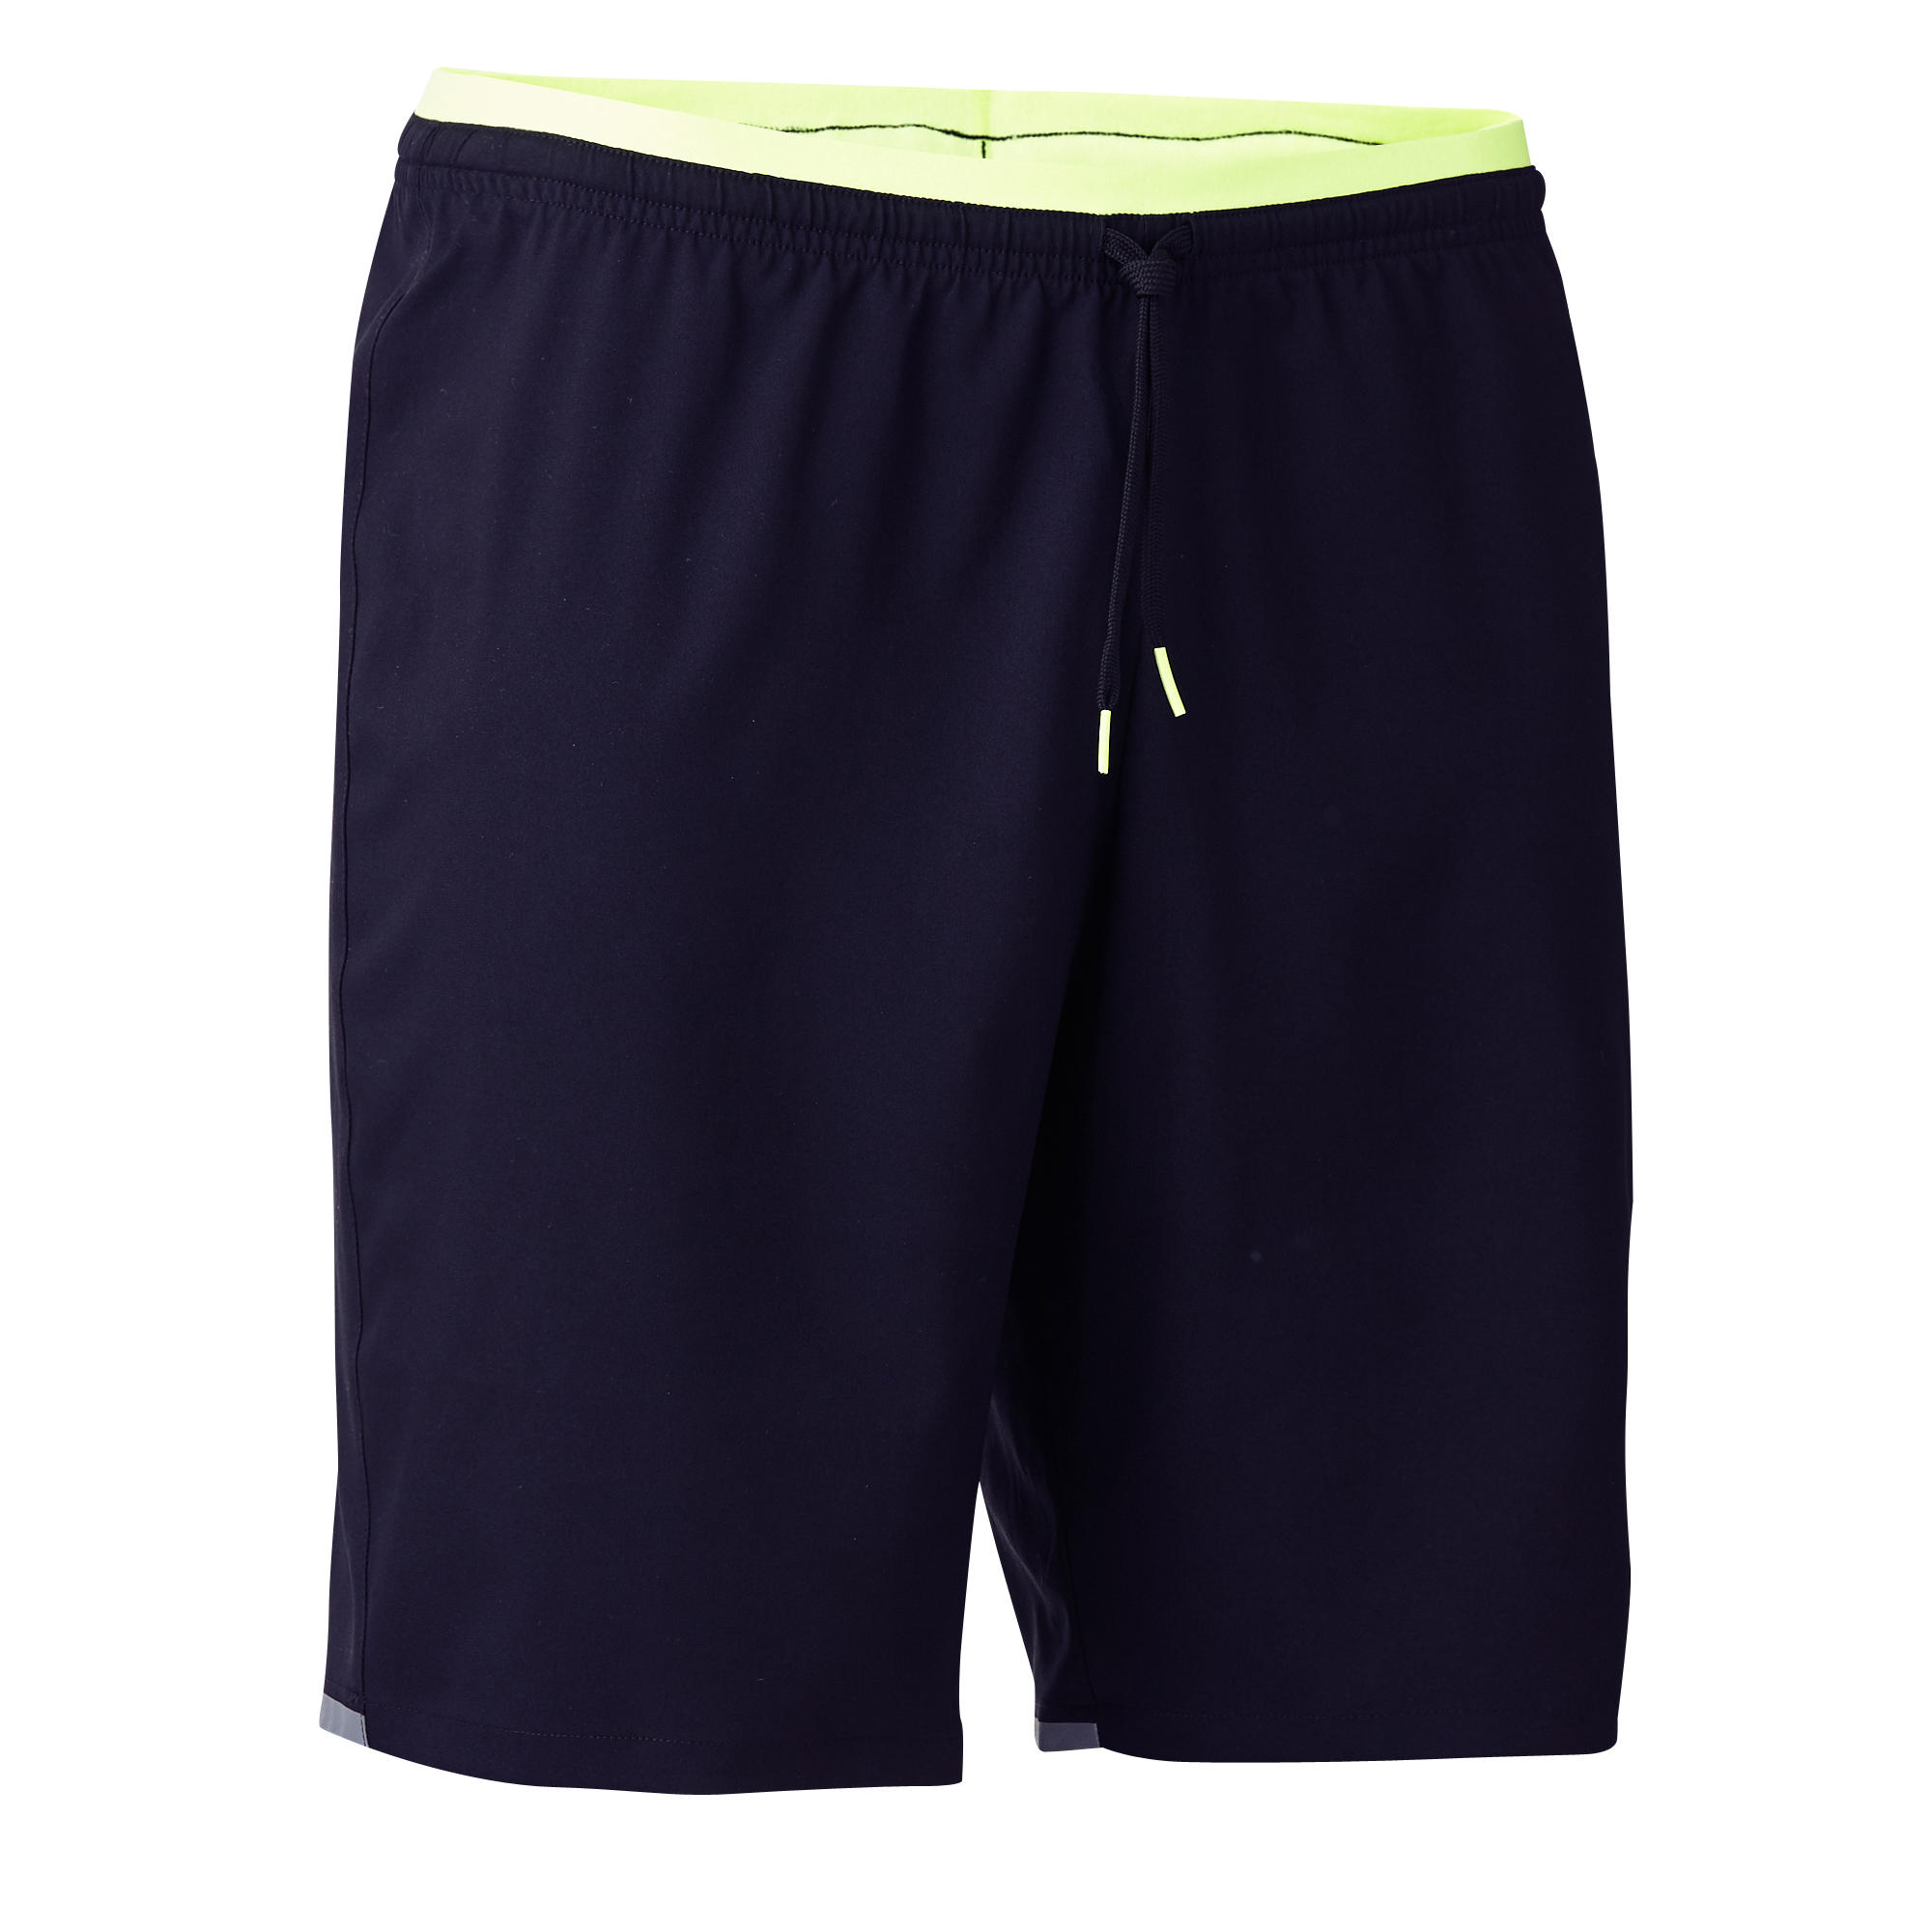 F500 Adult Soccer Shorts - Black